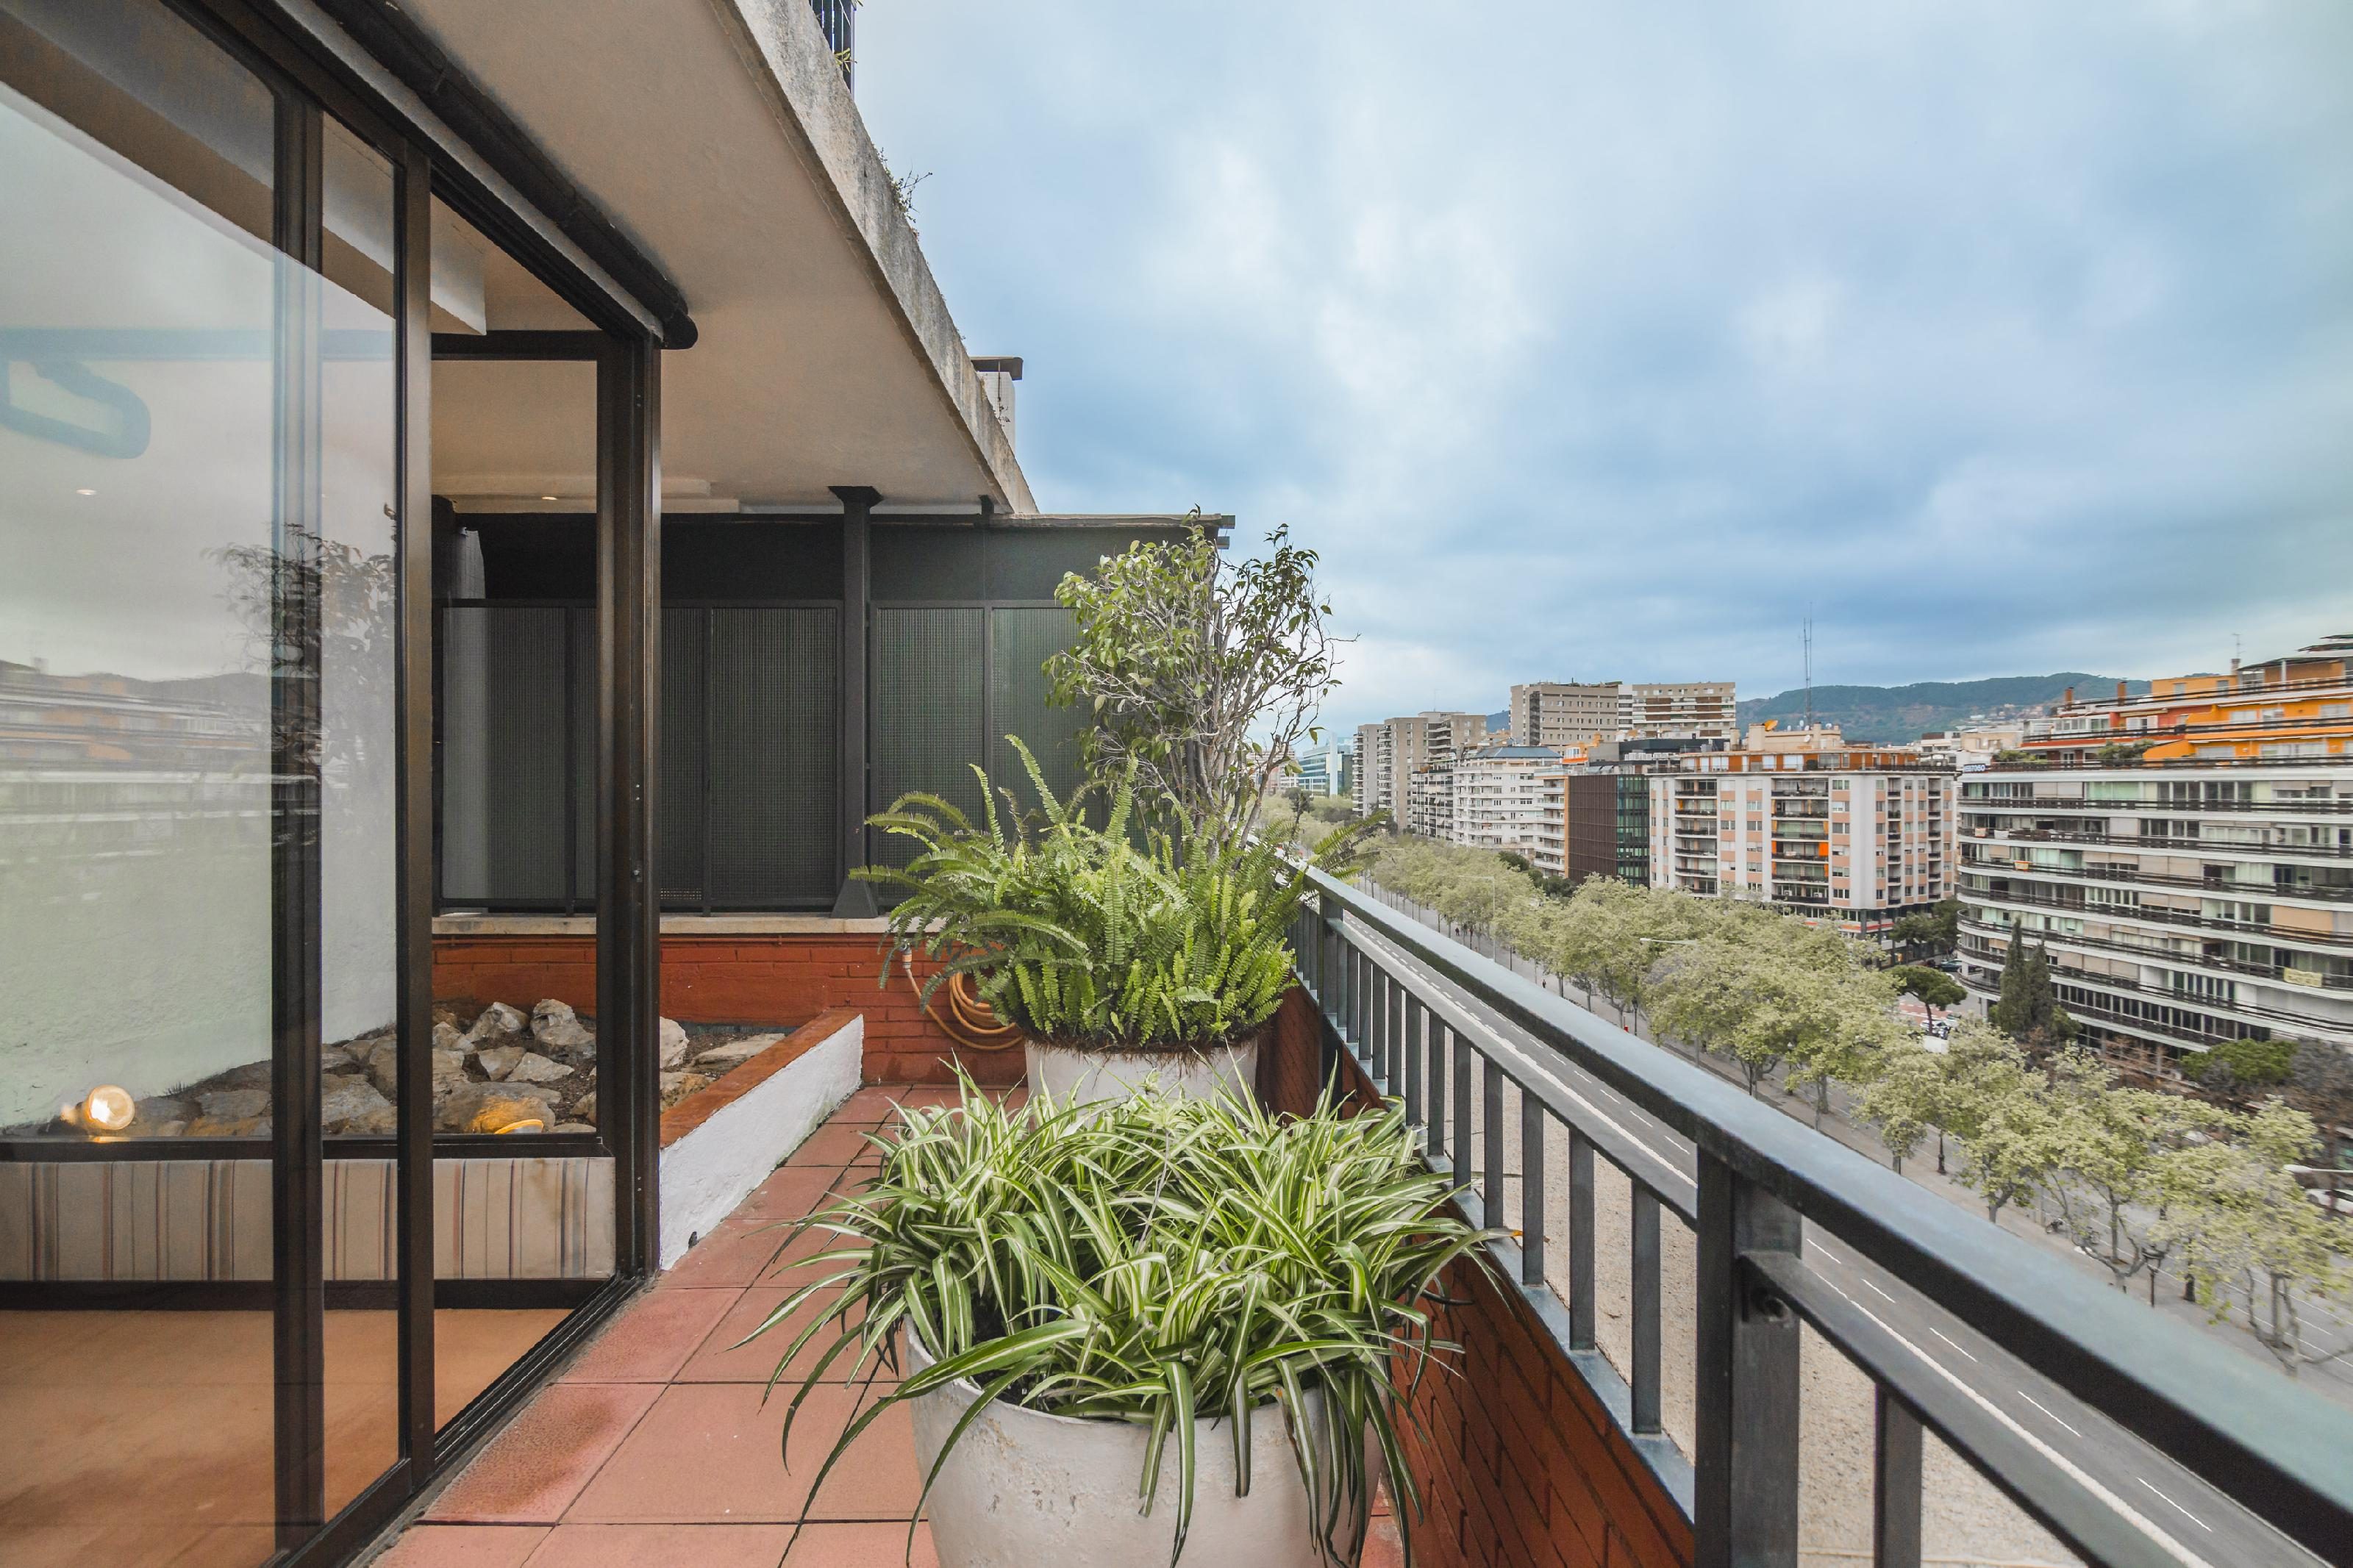 223855 Penthouse for sale in Les Corts, Les Corts 1